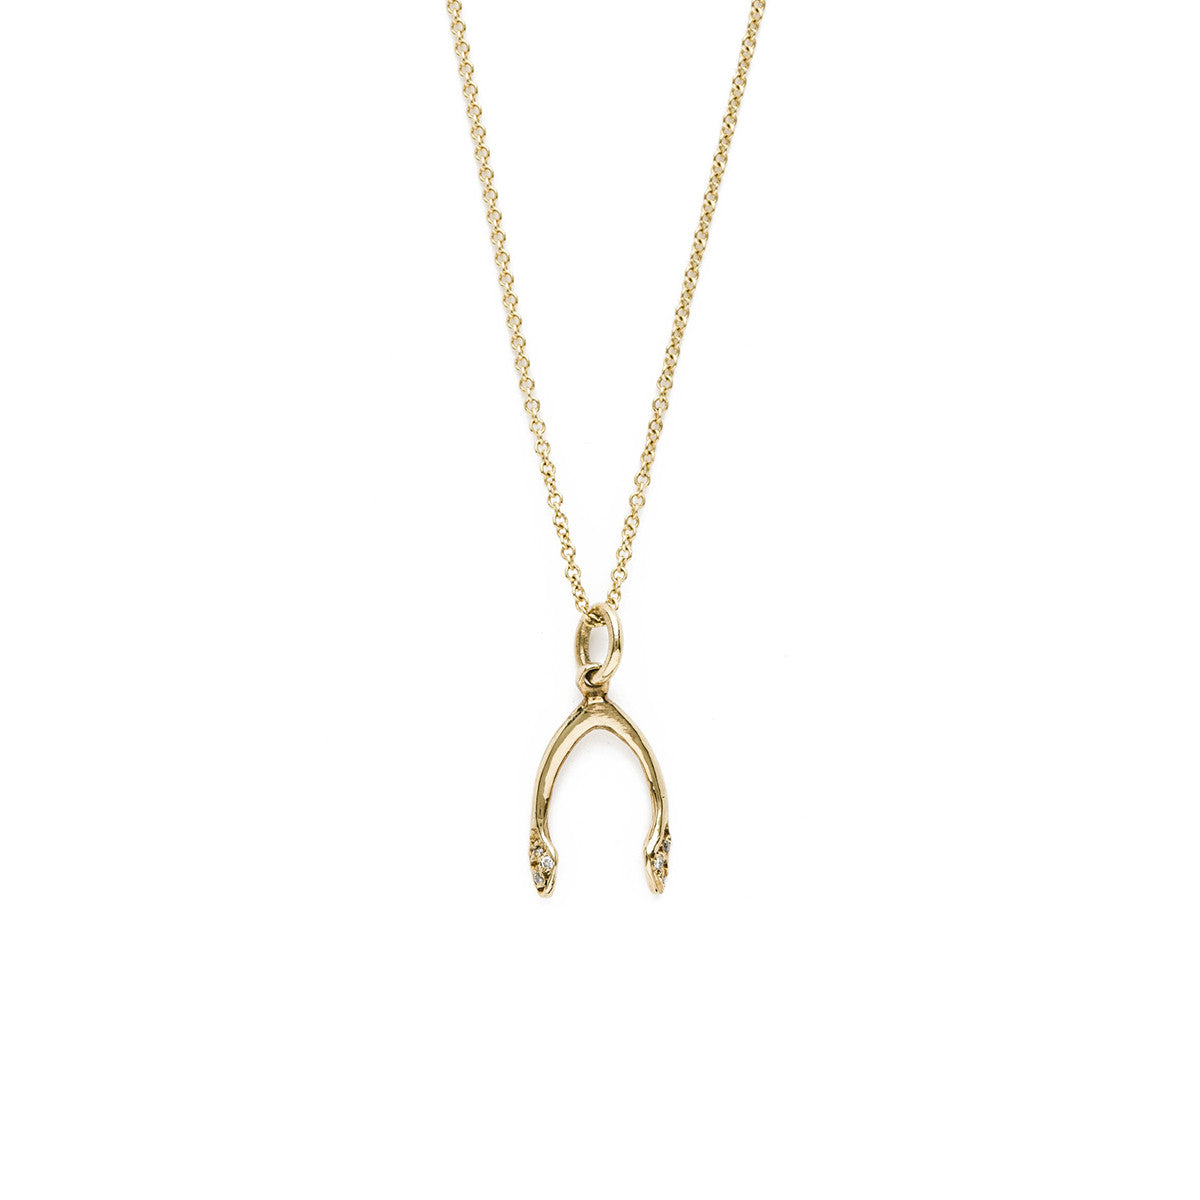 Lena wald 14k gold or silver wishbone necklace iconery wishbone necklace wishbone necklace aloadofball